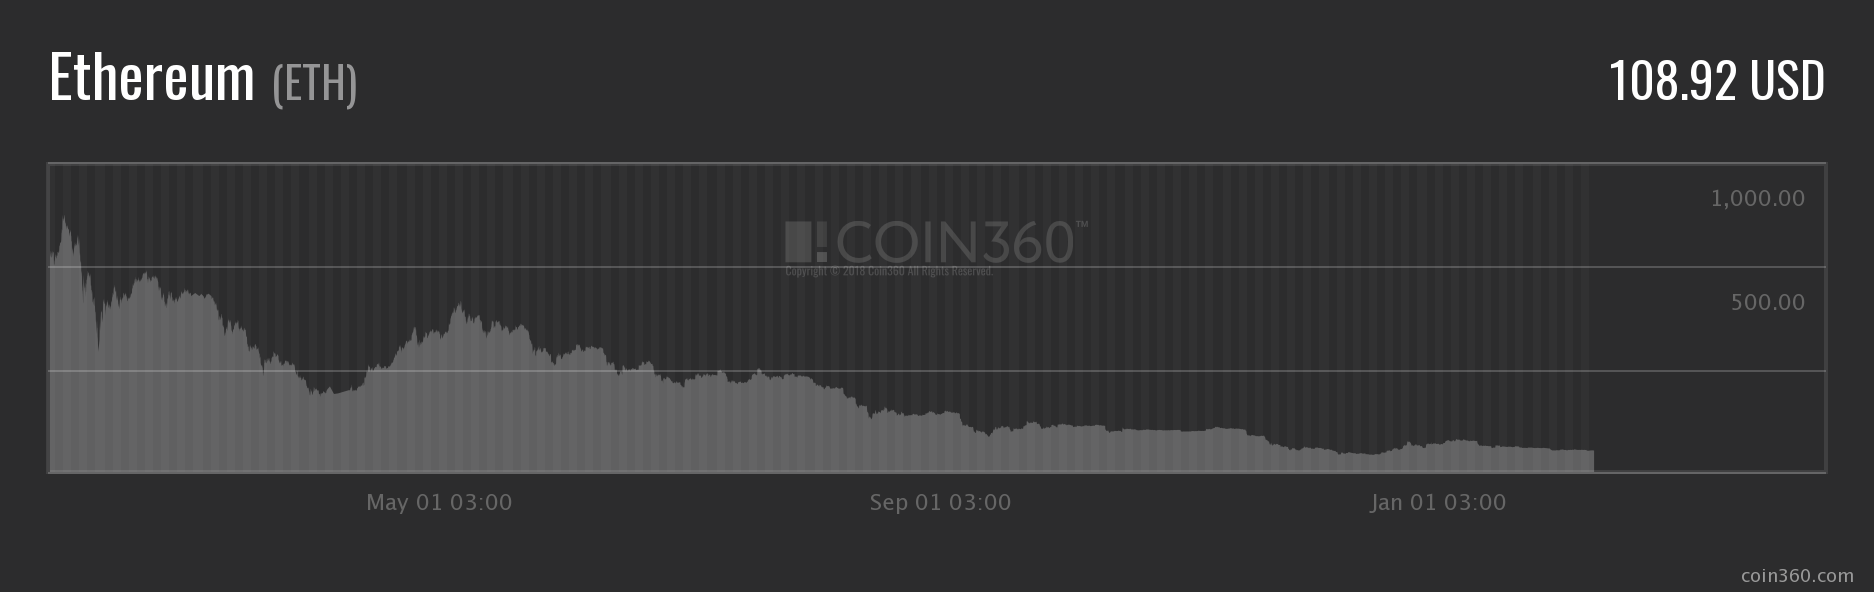 Eth Price Fluctuations in 2018